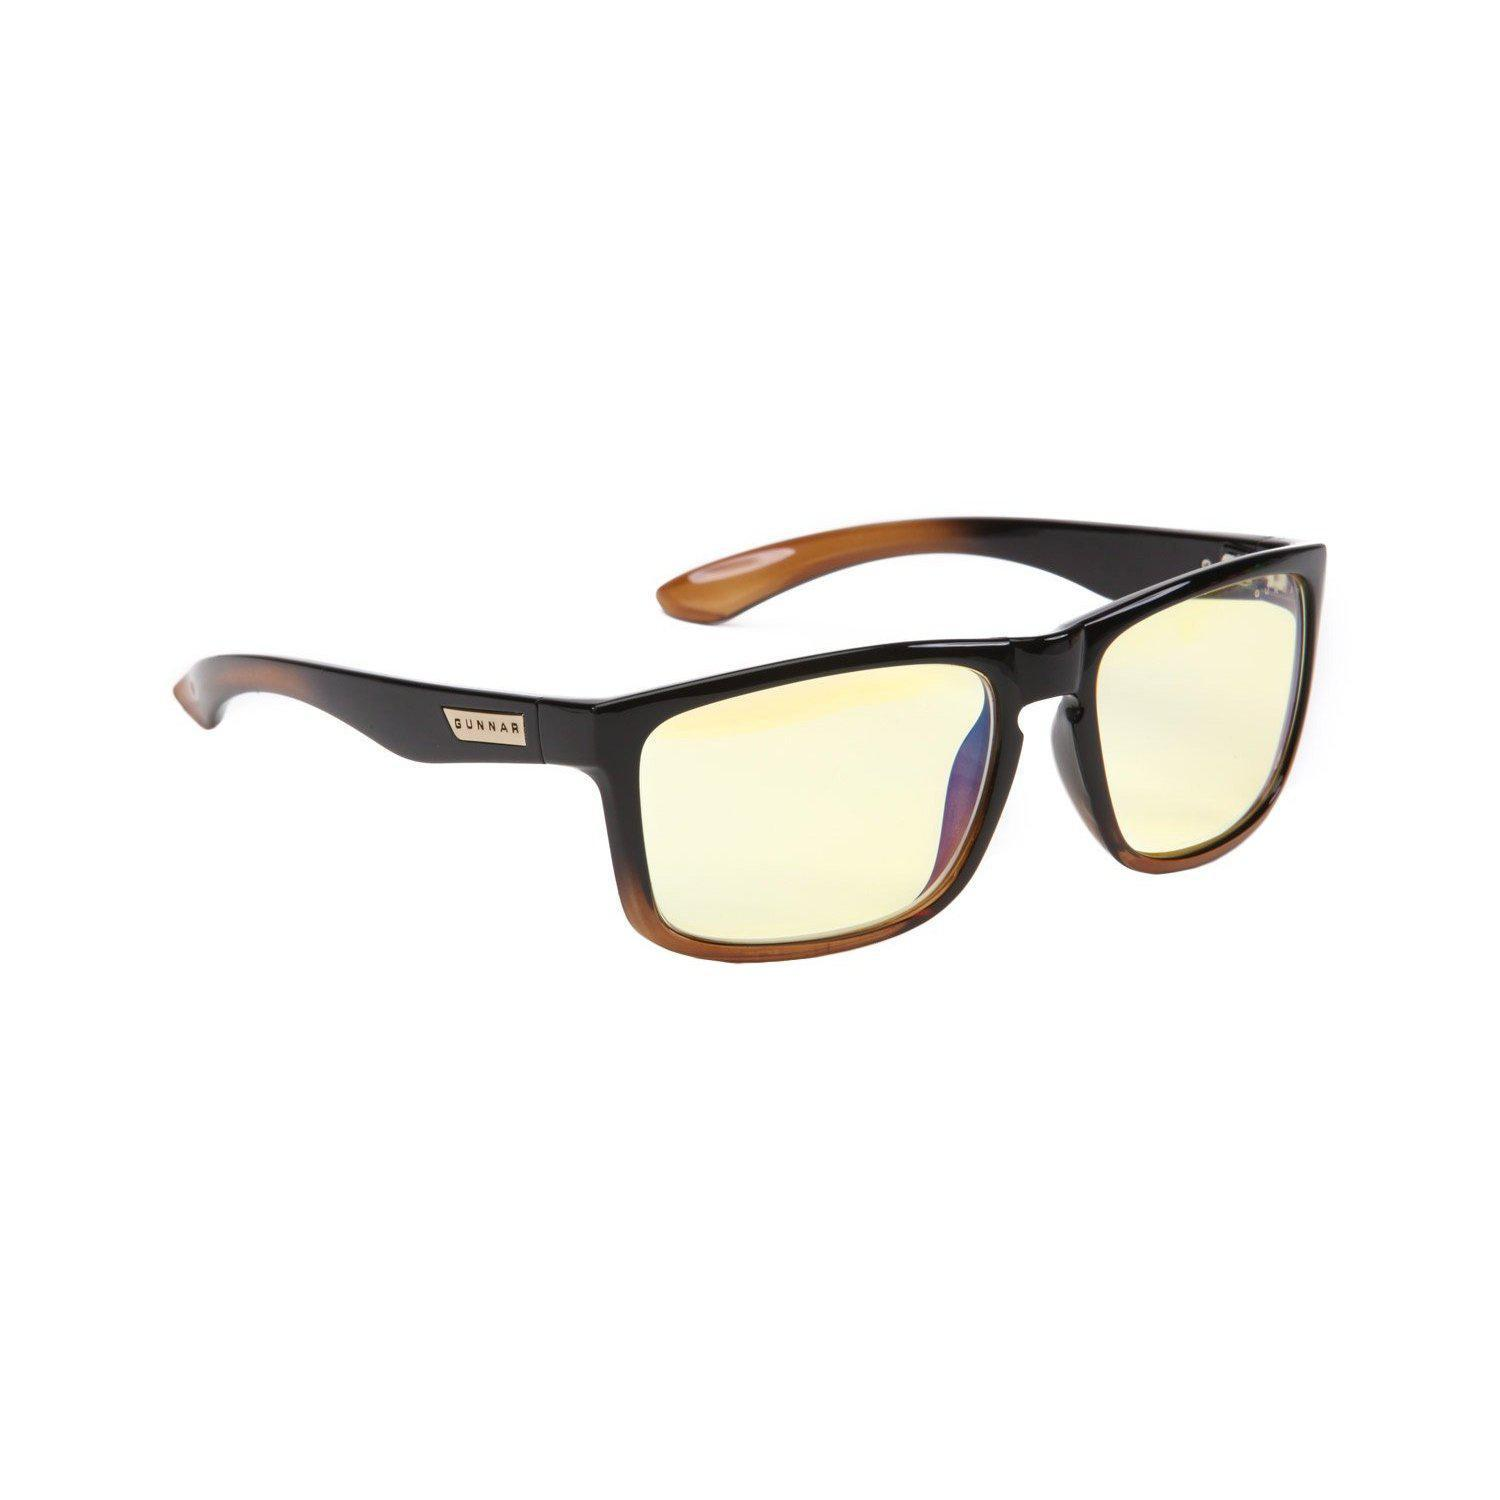 Gunnar Intercept 24K Amber Dark Ale Indoor Digital Eyewear